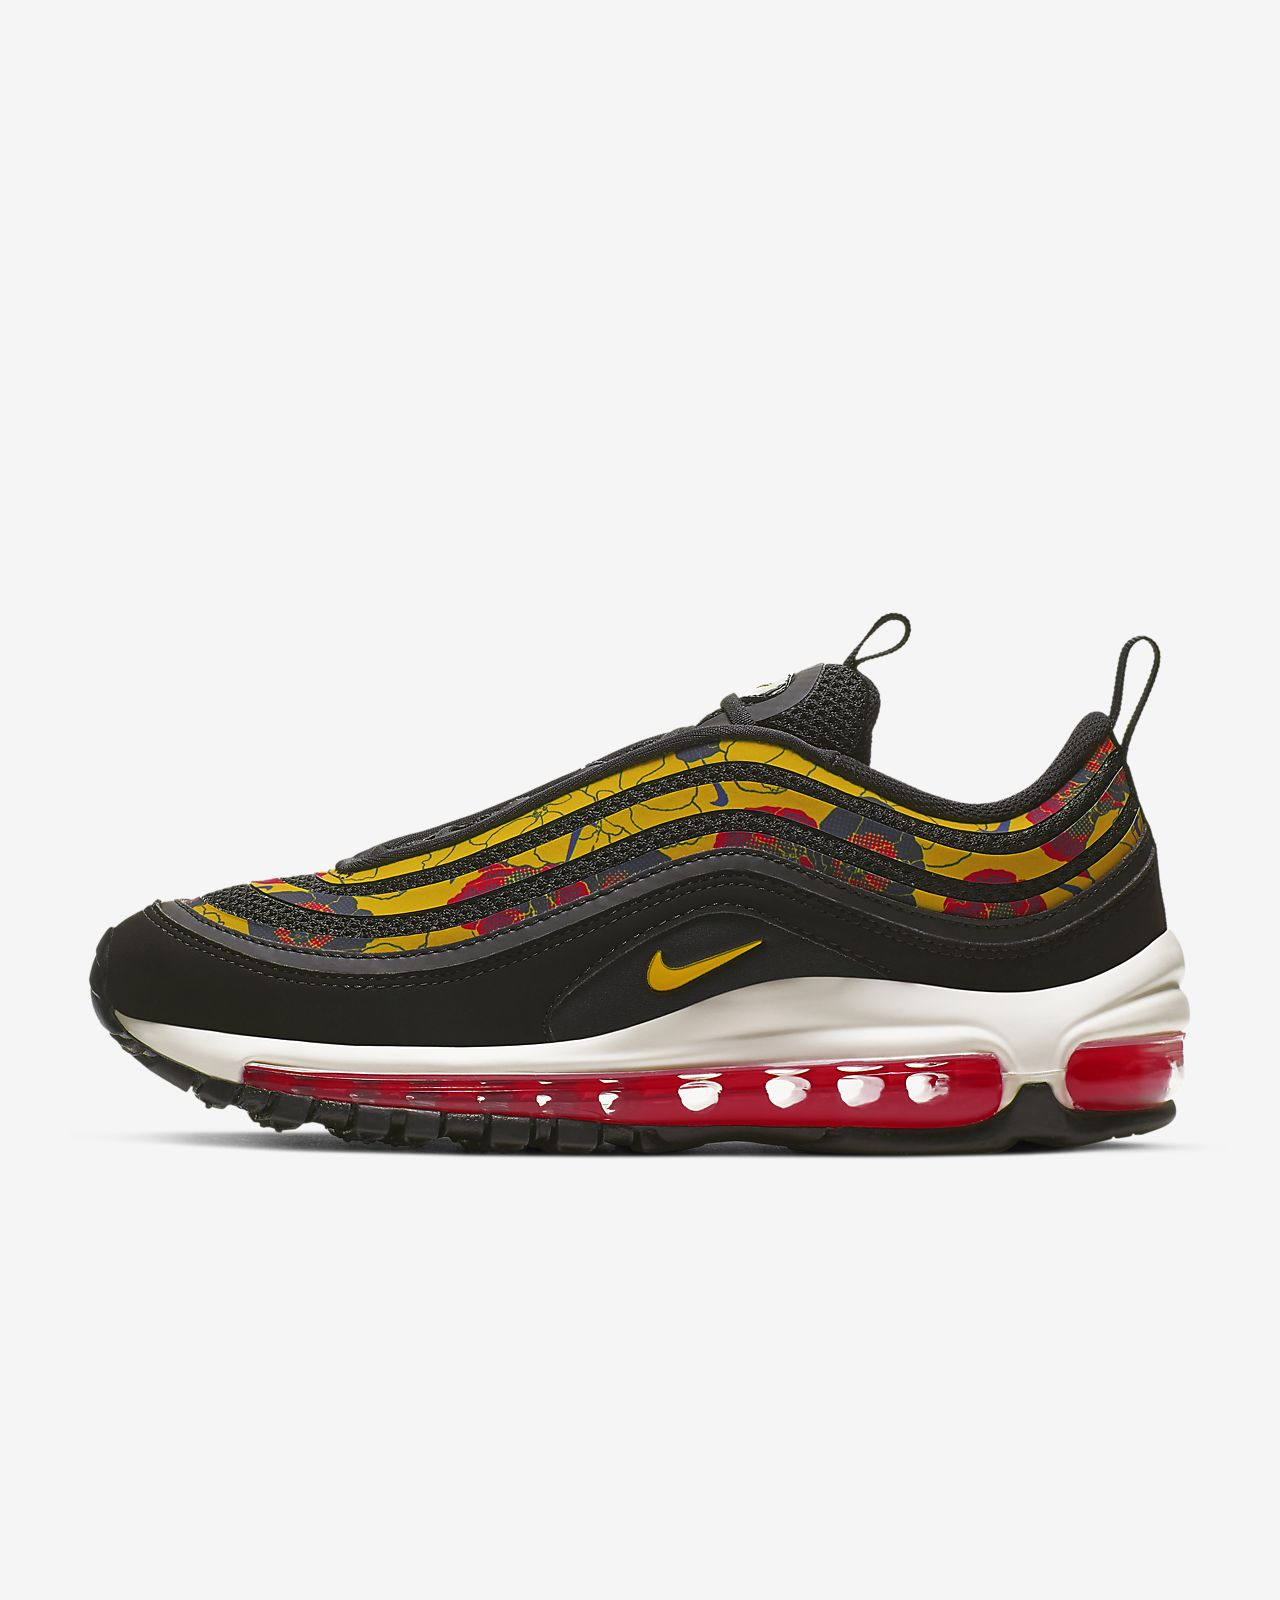 on sale 40373 04b55 Nike Air Max 97 SE Floral Women's Shoe